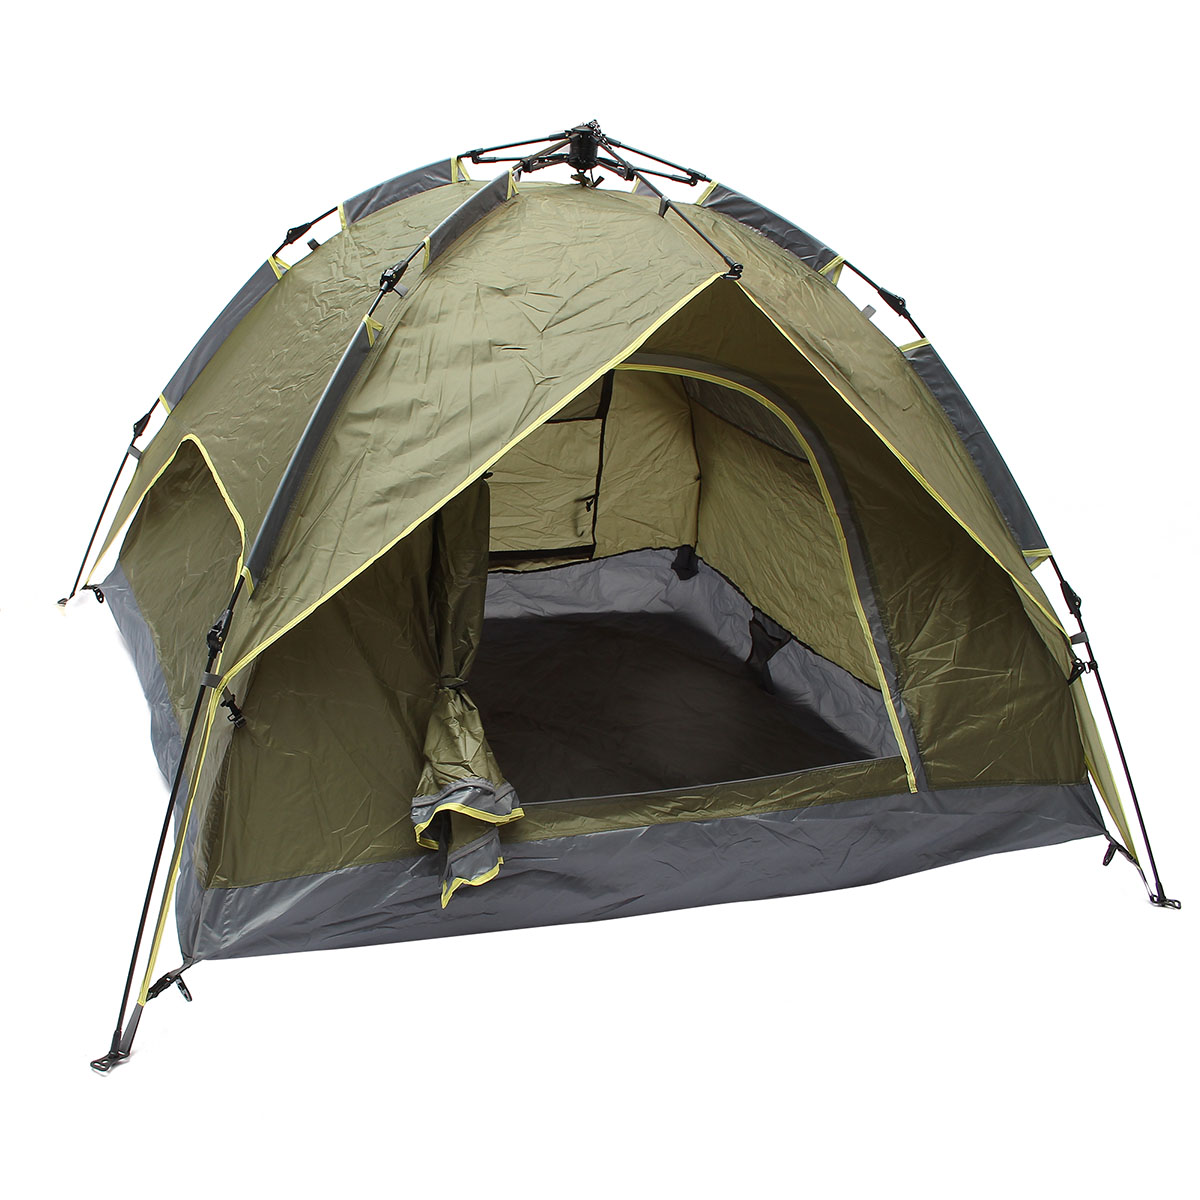 Outdoor 3-4 Persons Camping Tent Double Layer Waterproof Windproof UV Sunshade Canopy Outdoor Sport Beach Travel Hiking TentsOutdoor 3-4 Persons Camping Tent Double Layer Waterproof Windproof UV Sunshade Canopy Outdoor Sport Beach Travel Hiking Tents